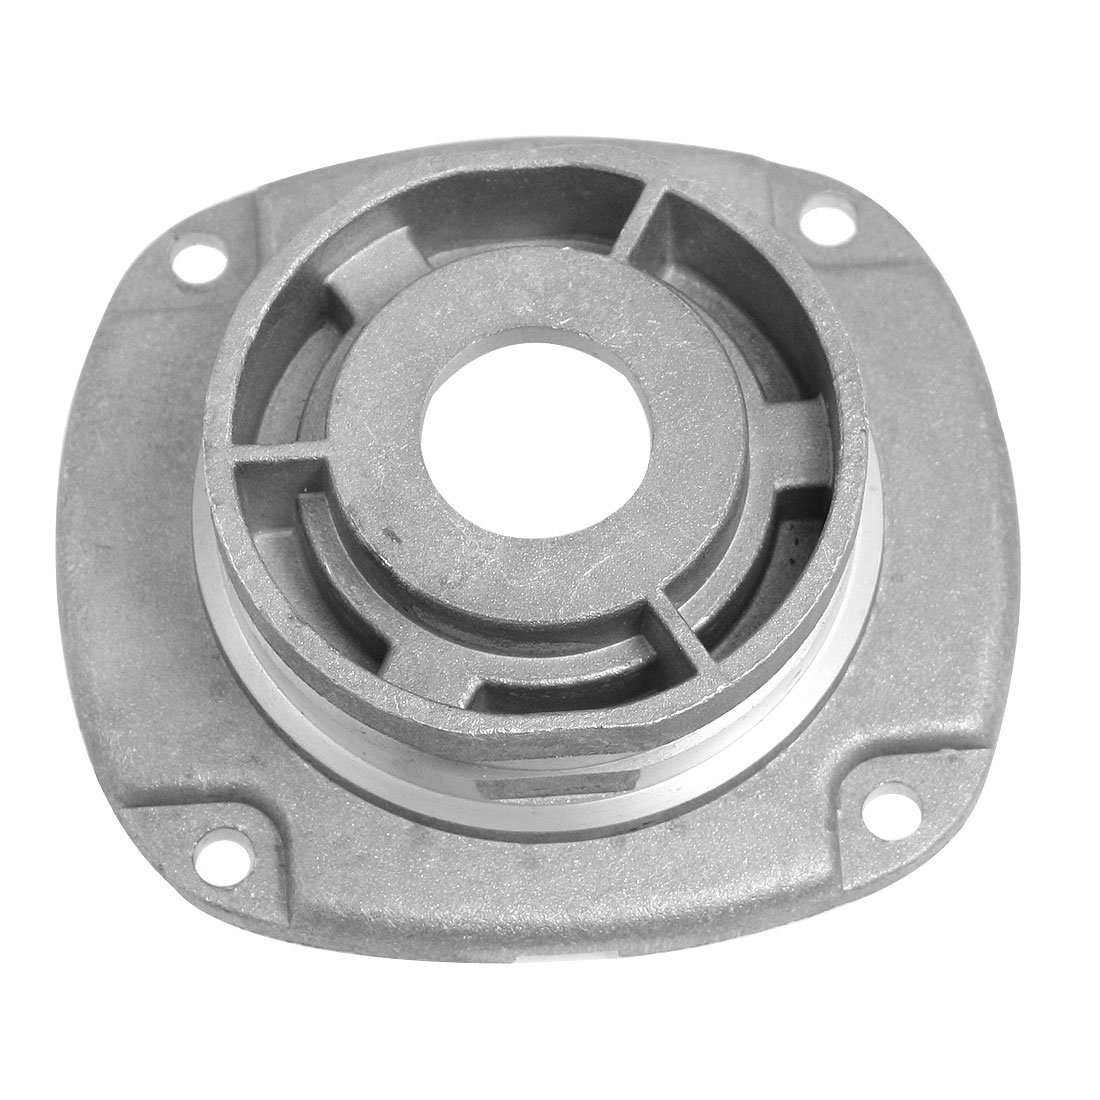 Aluminum Bearing Seat Spare Parts for Hitachi 180 G18SE2 Angle Grinder